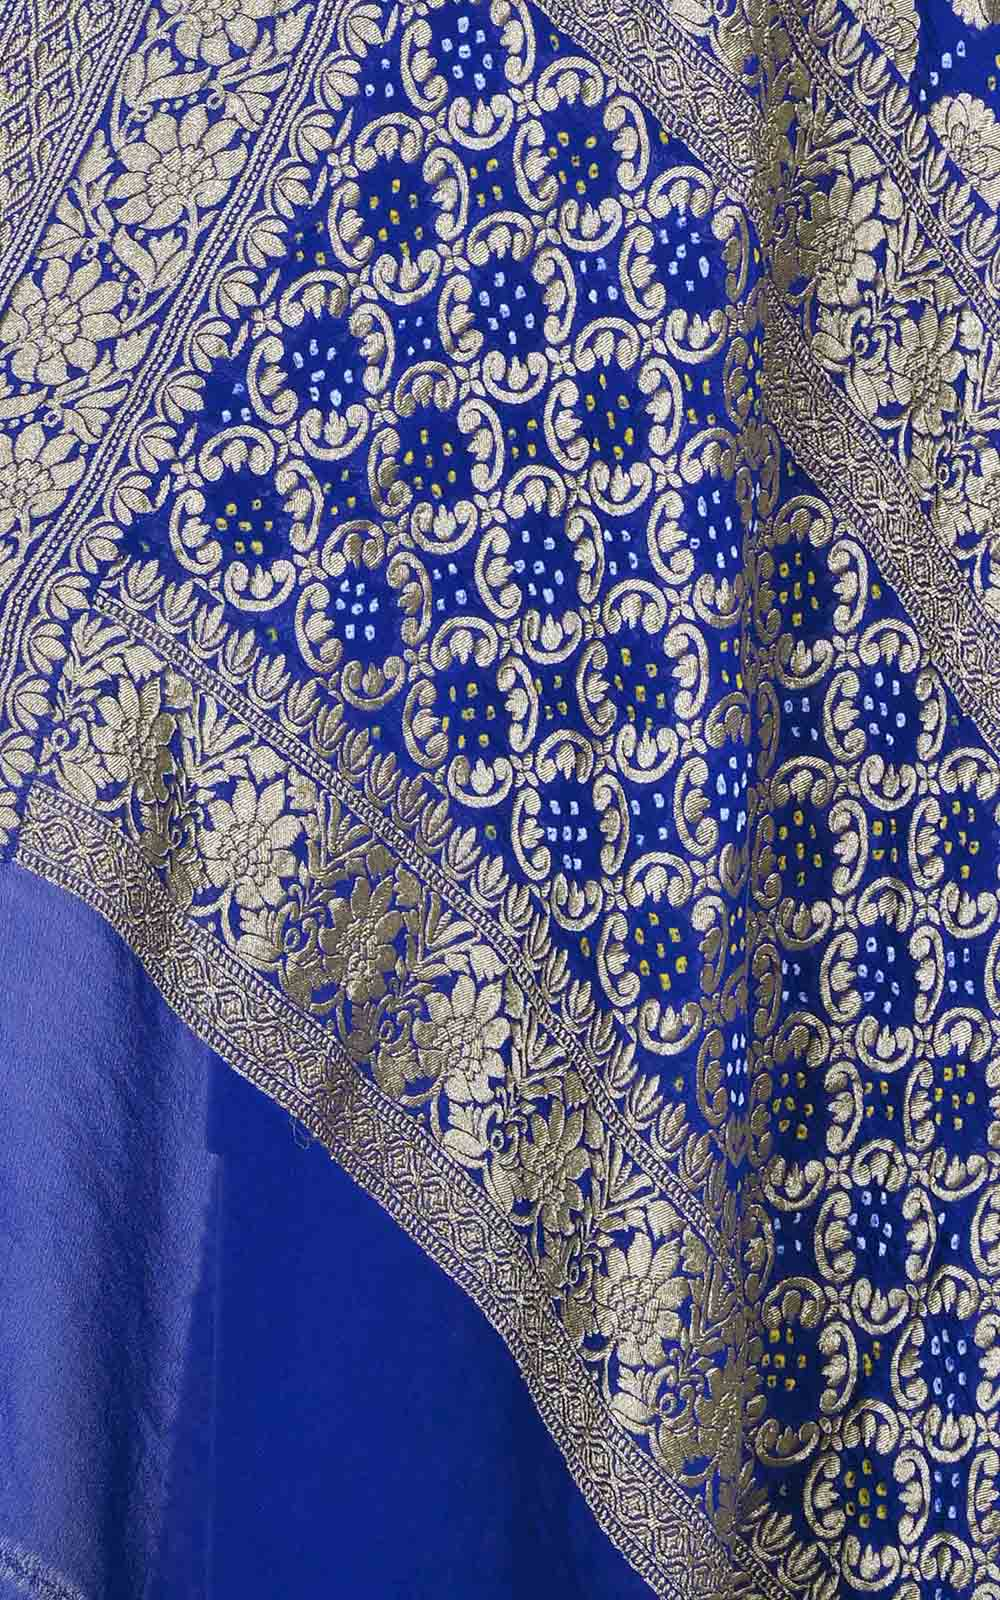 Blue Turquoise khaddi georgette Bandhani Banarasi dupatta (2) Close up